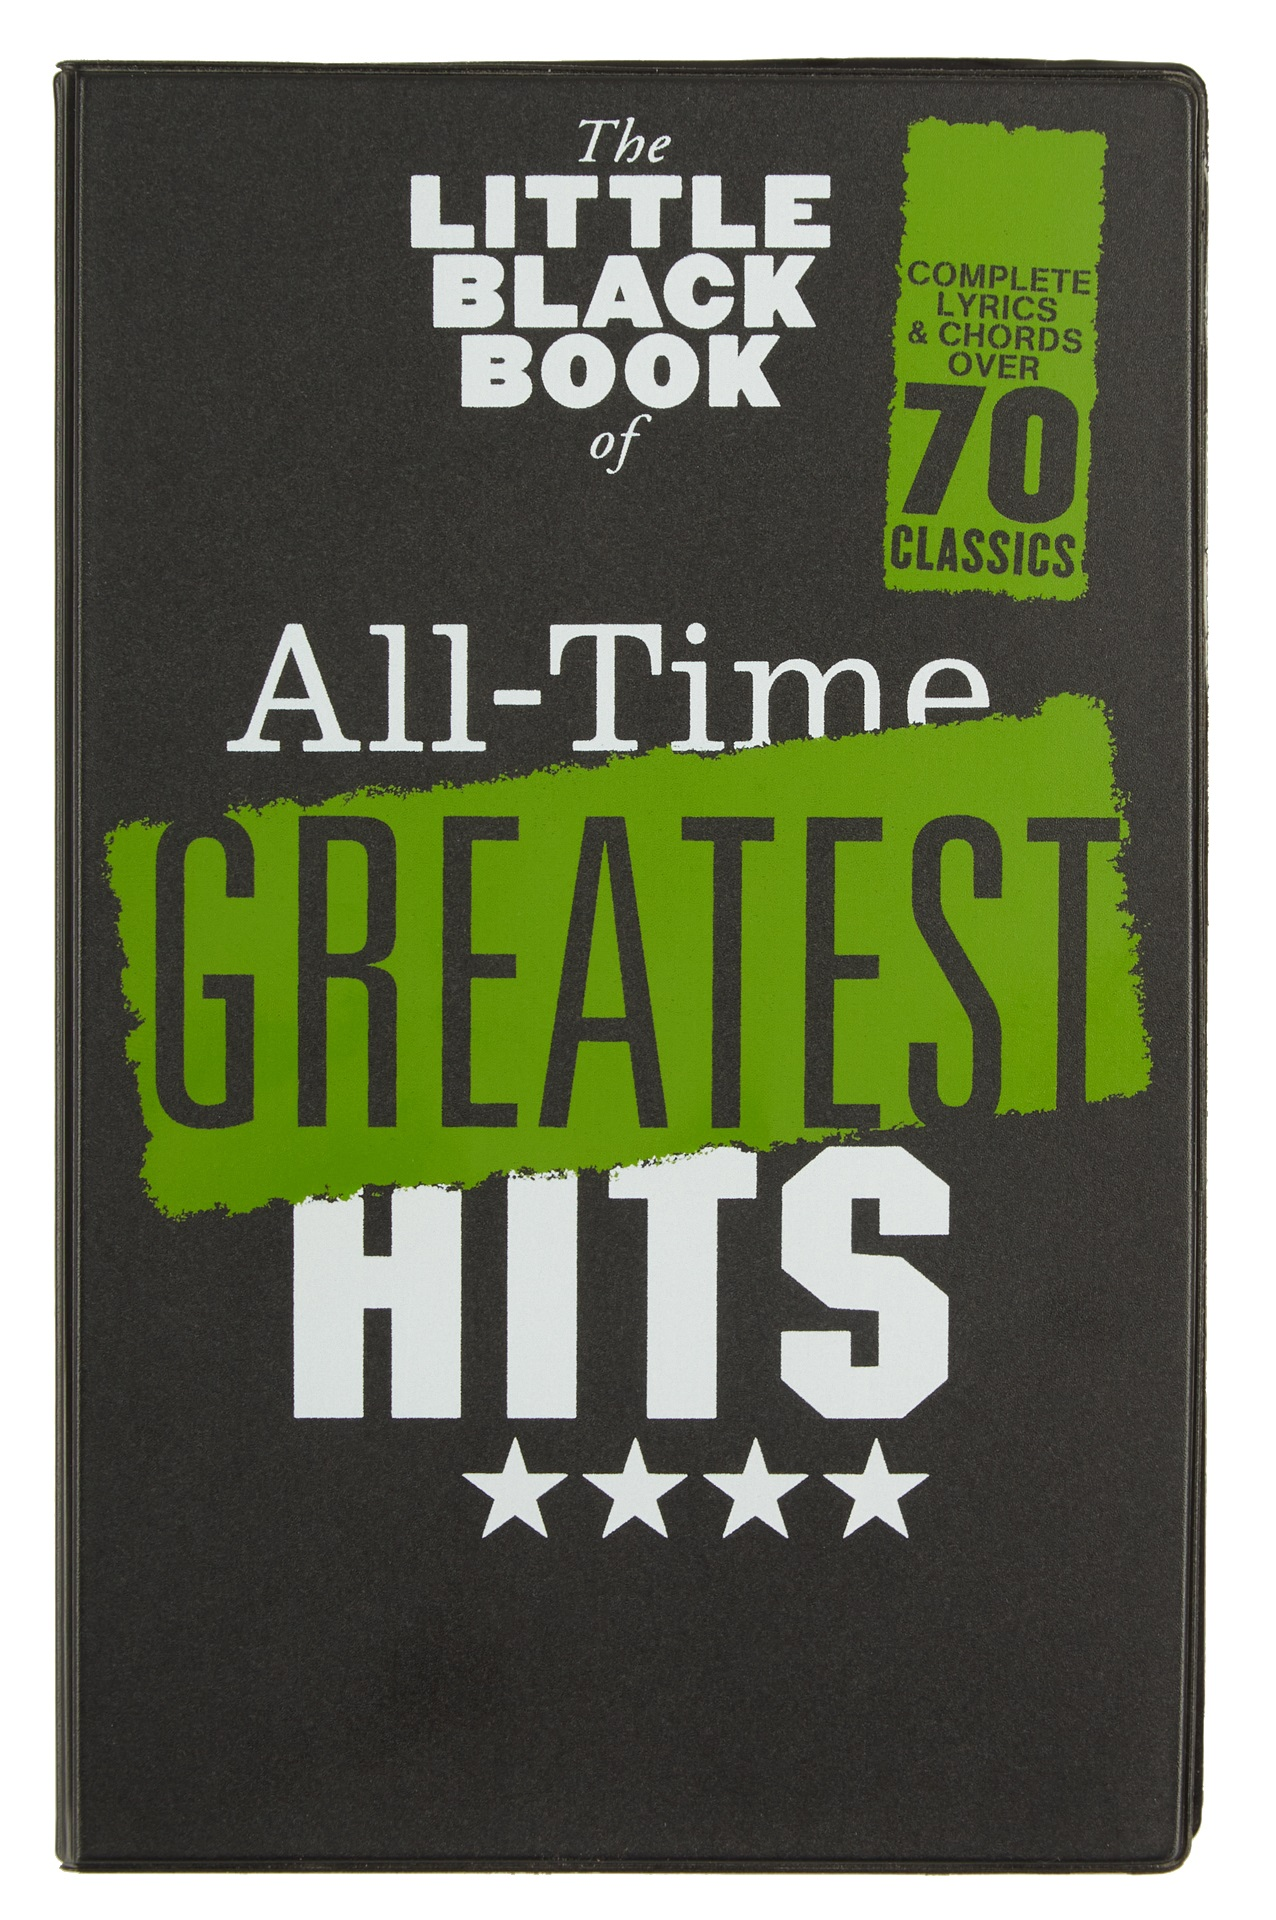 MS The Little Black Book Of All-Time Greatest Hits